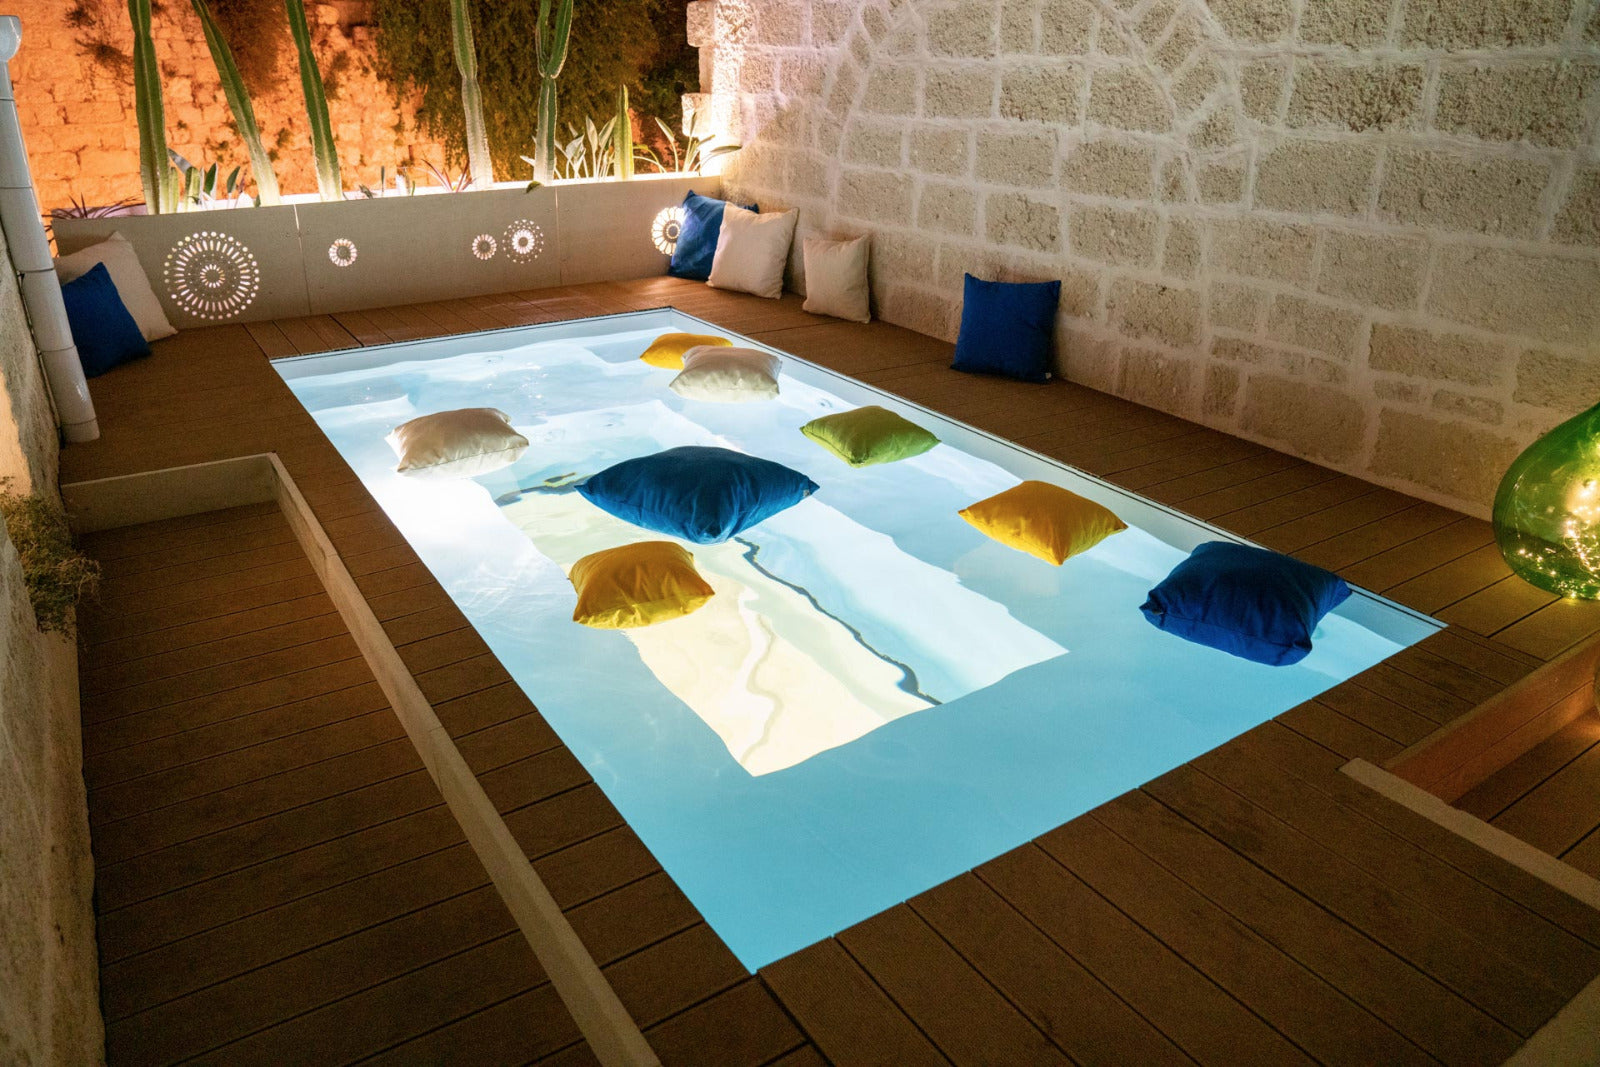 Cuscino idrorepellente in piscina Bantal